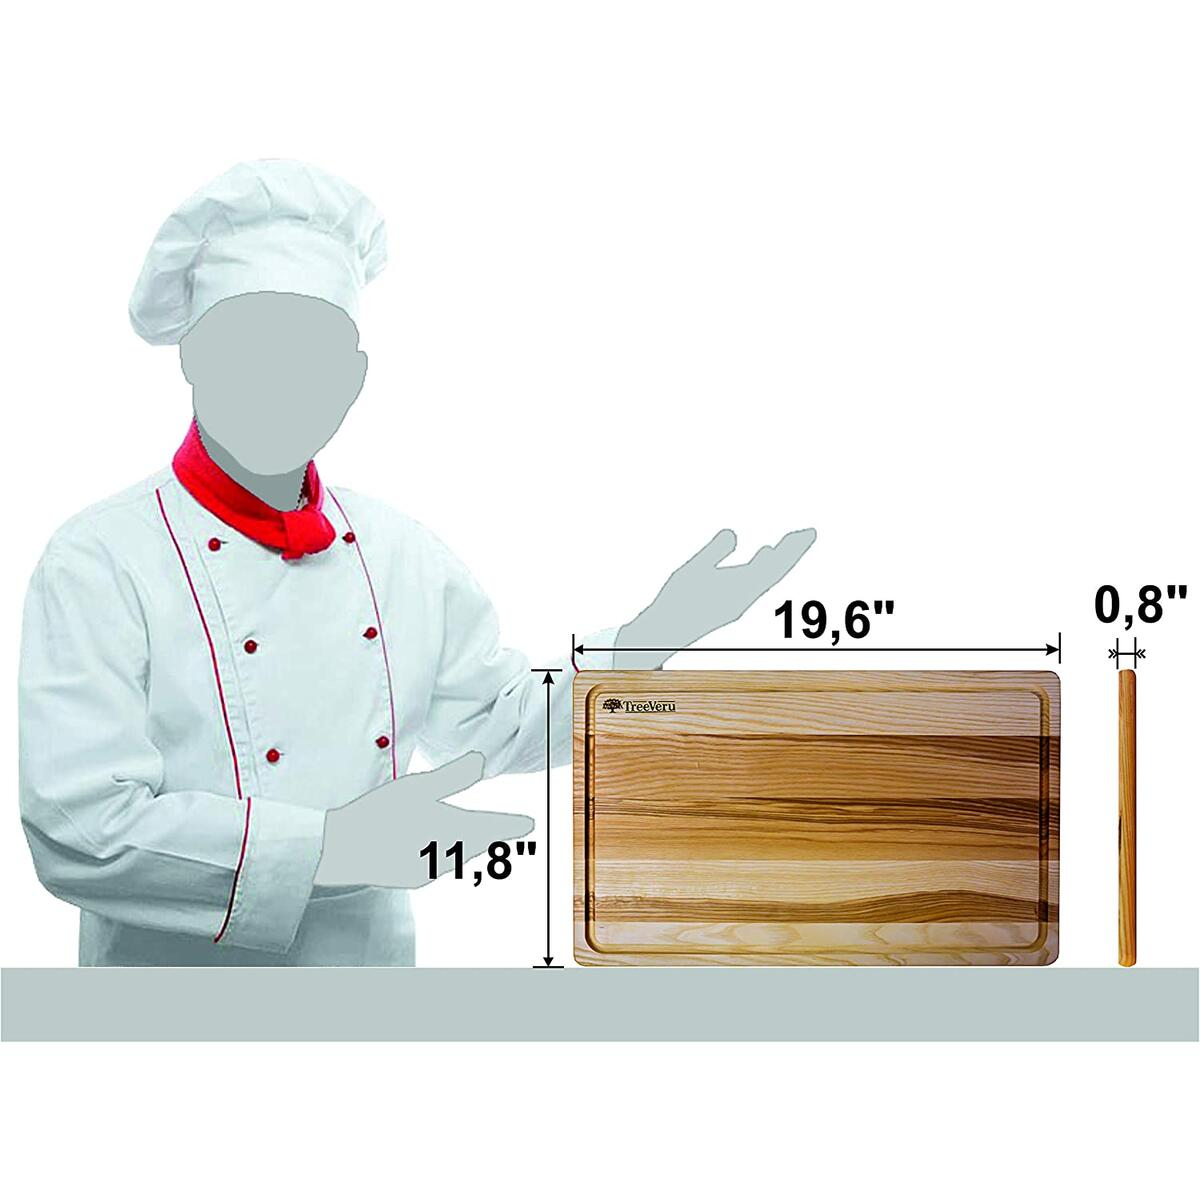 TreeVeru Large Wooden Cutting Board for Kitchen – 19.6х13.7х0.8 Inch Chopping Block Cutting Board with Juice Groove, Ash Butcher Block, Premium Wooden Carving Board for Meat, Cheese, Vegetables